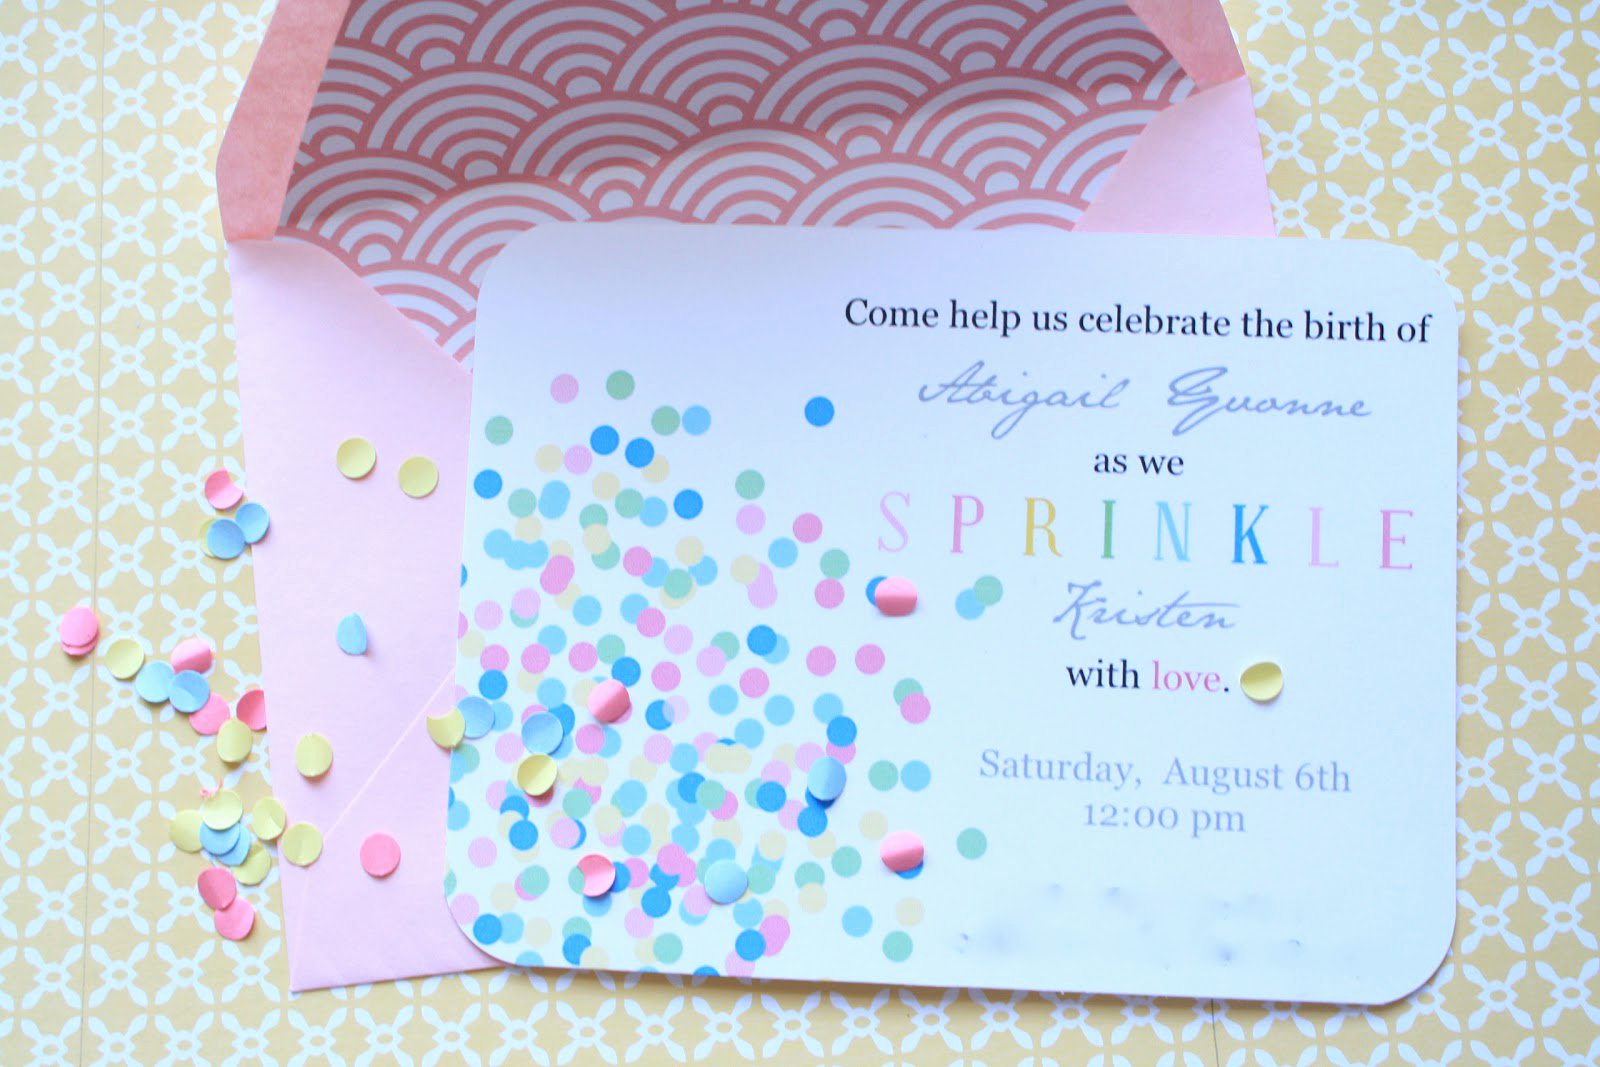 Sprinkle Baby Shower Invitation Wording New Second Baby Shower Invitation Wording